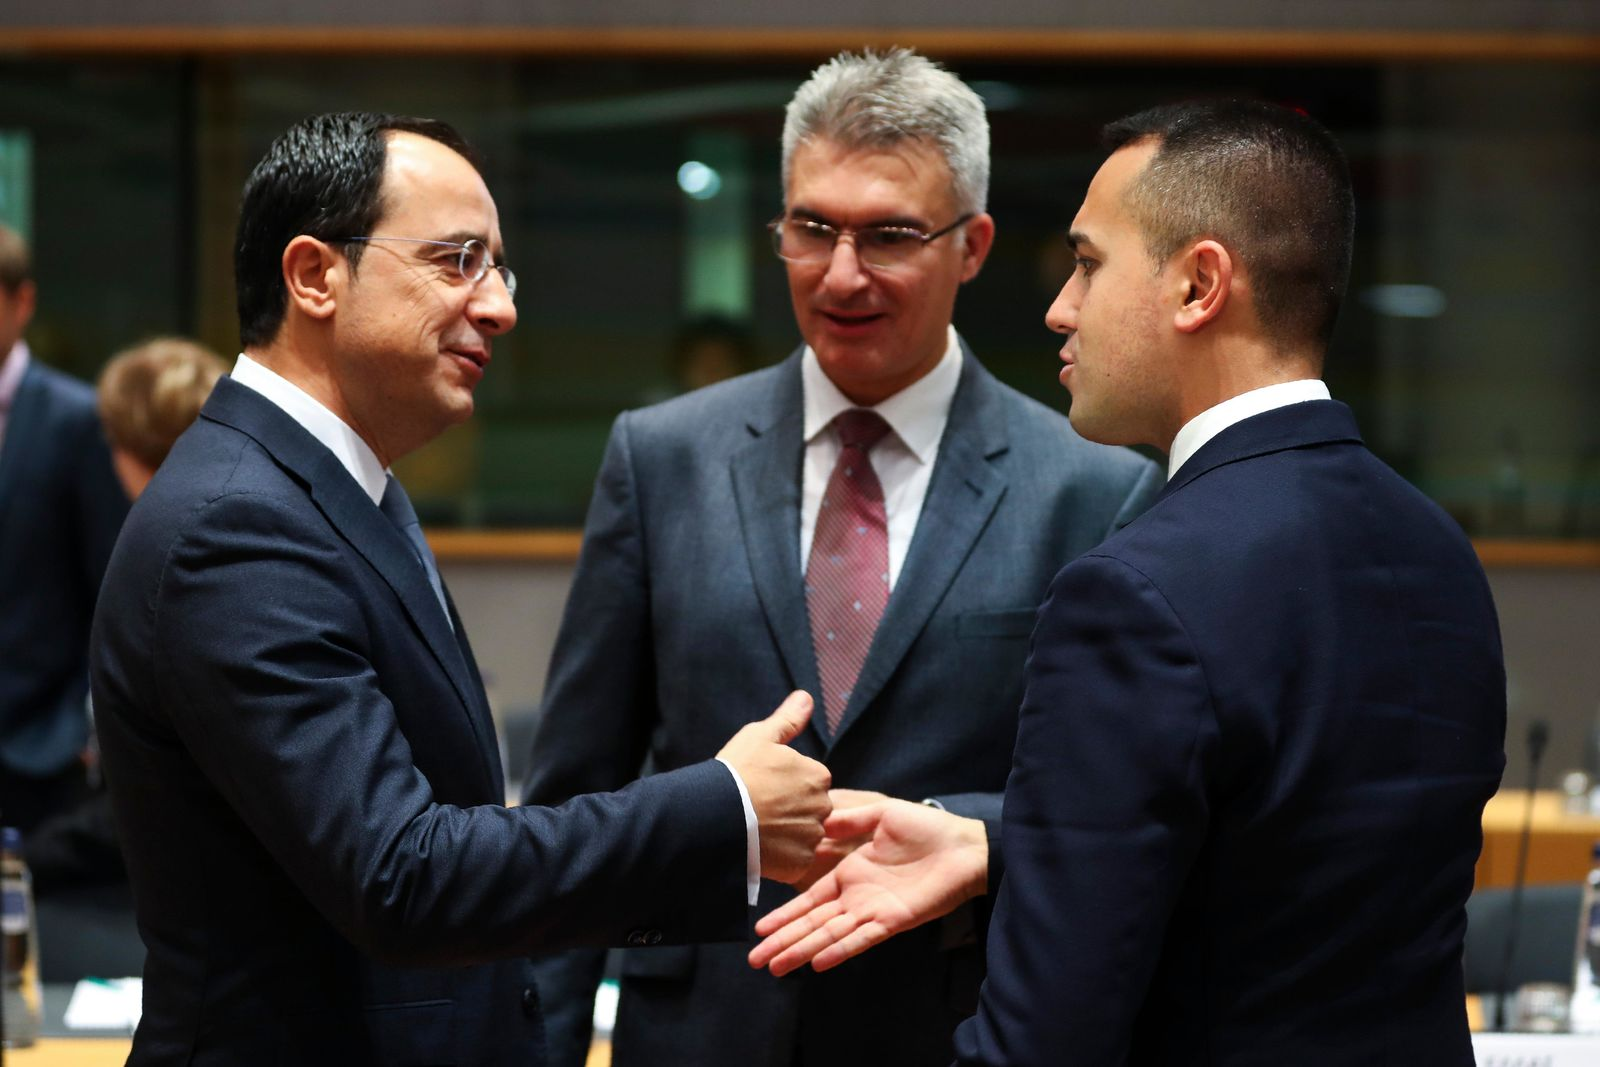 Italian Foreign Minister Luigi Di Maio, right, talks to Cyprus' Foreign Minister Nicos Christodoulides, left, and Malta's Foreign Minister Carmelo Abela during an European Foreign Affairs Ministers meeting at the Europa building in Brussels, Monday, Nov. 11, 201 (AP Photo/Francisco Seco)